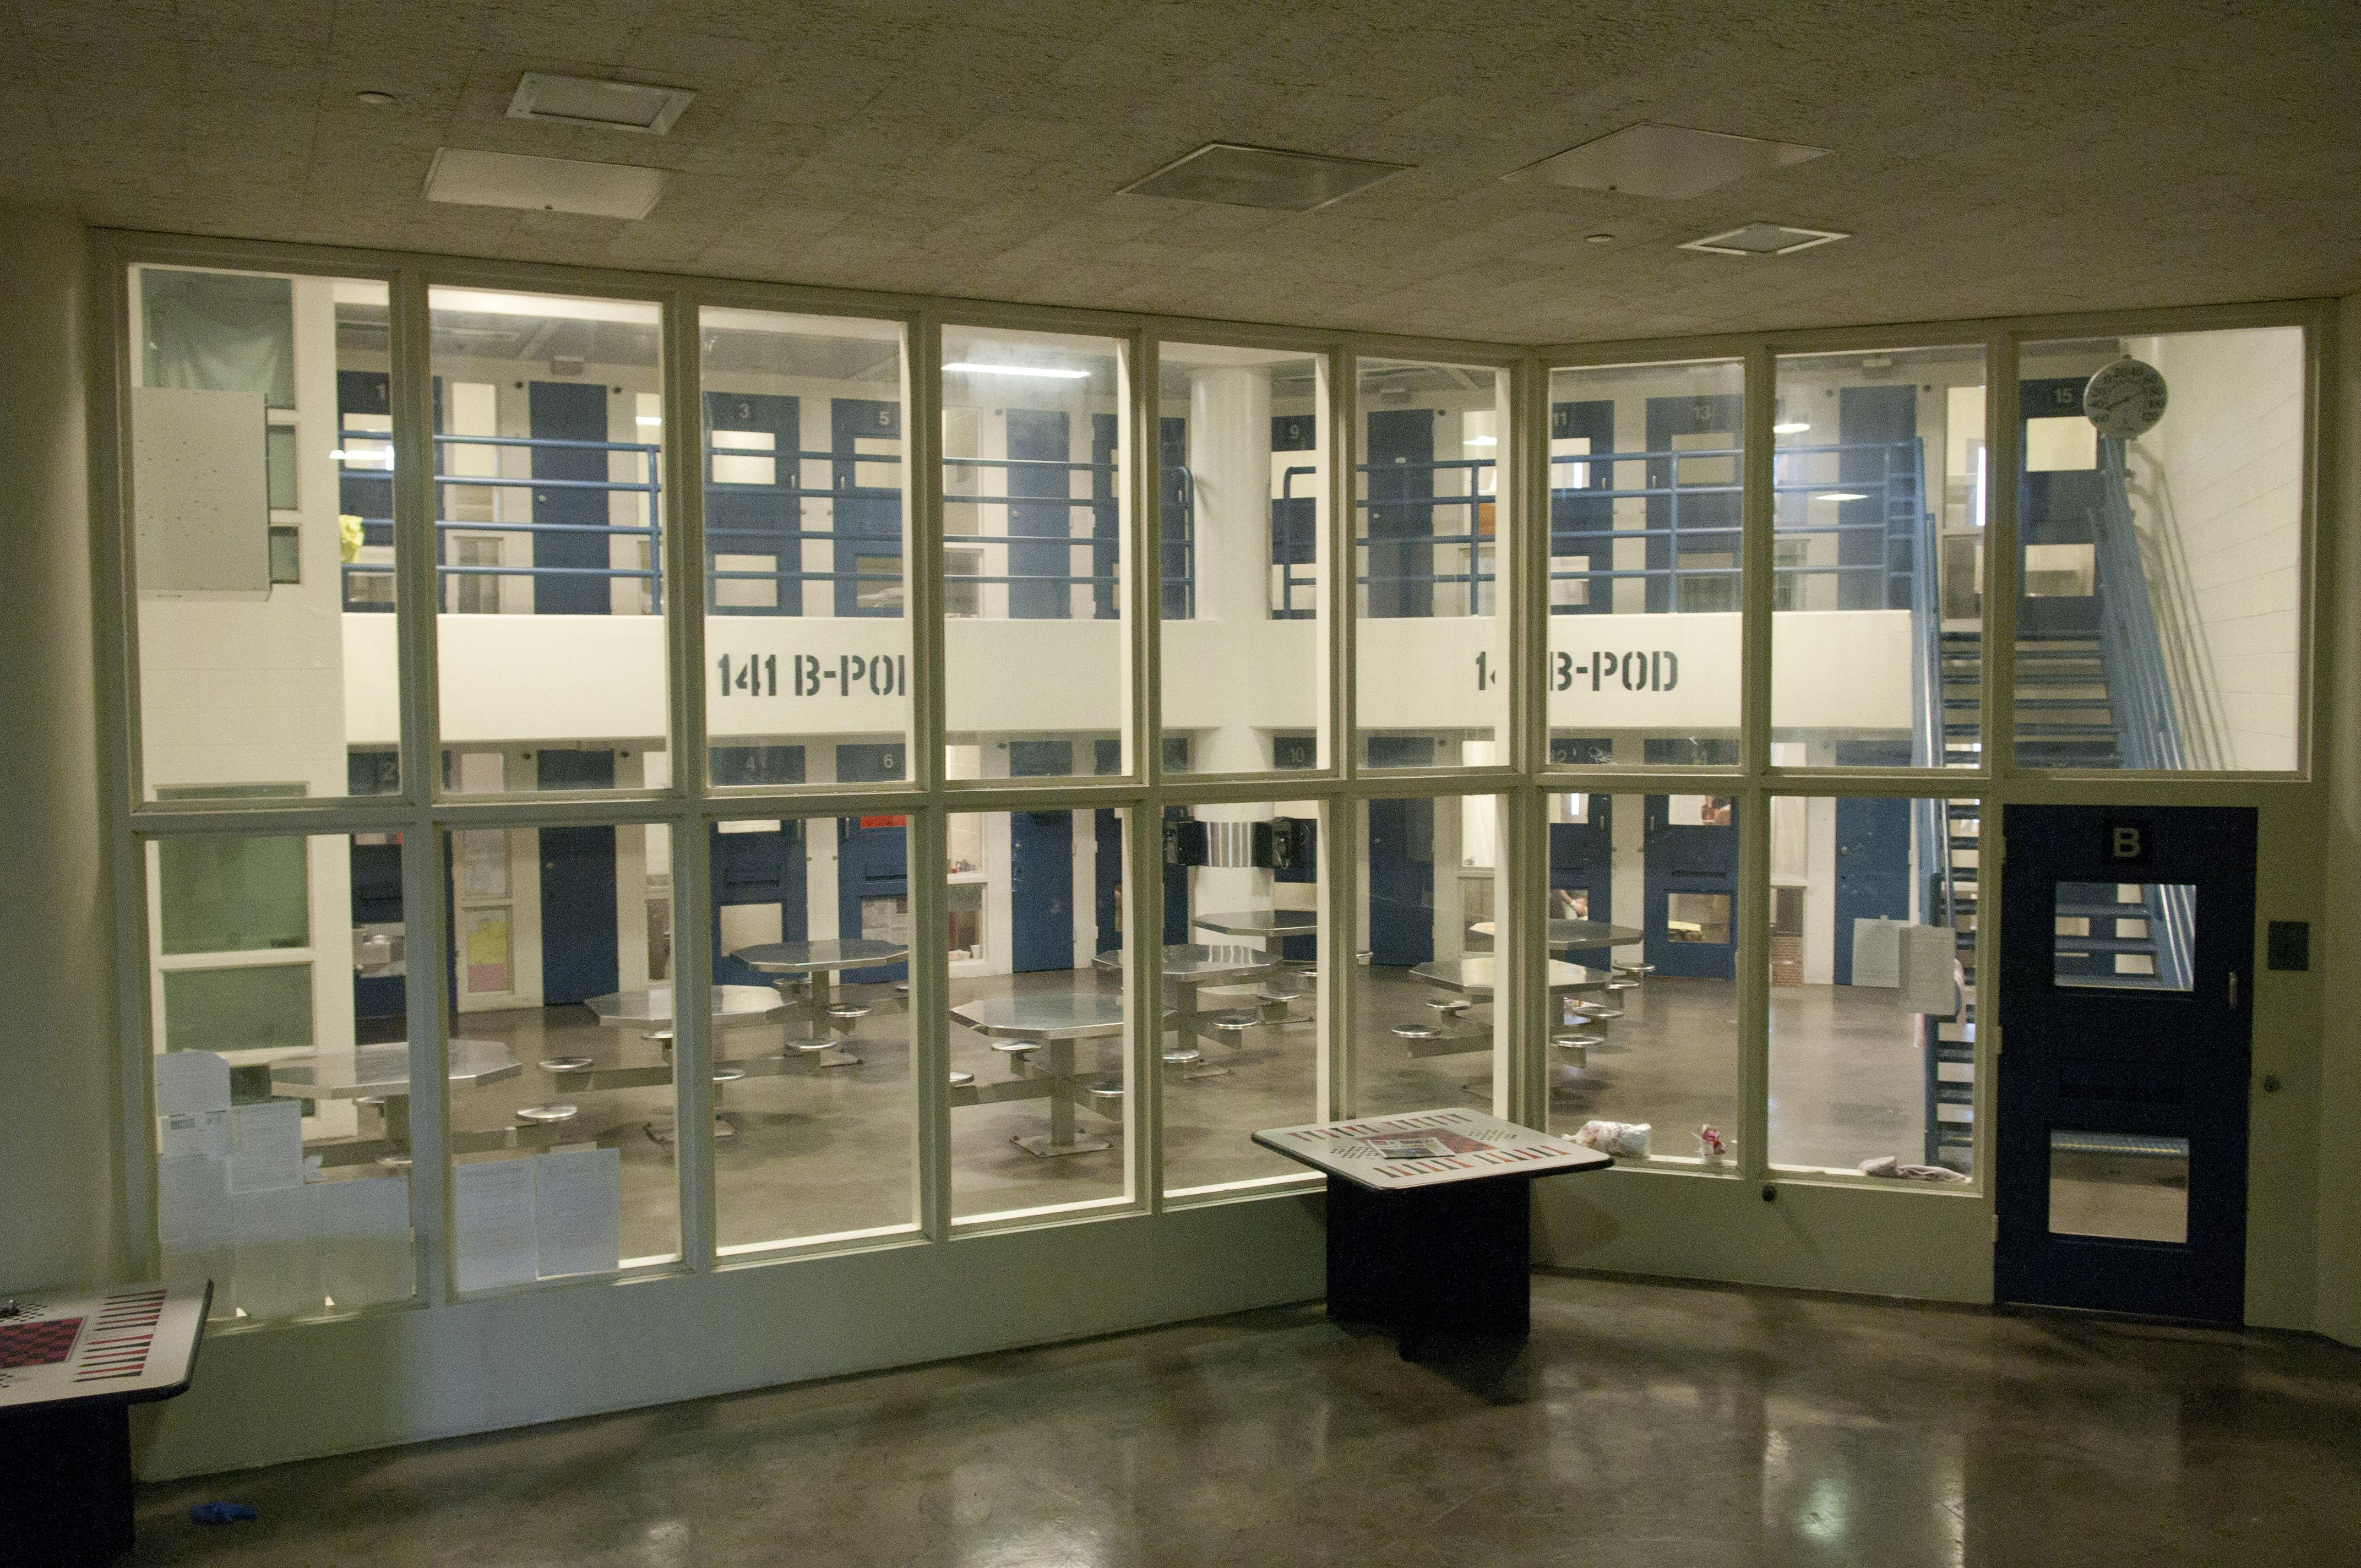 Inside look into 141 bpod at twin towers correctional